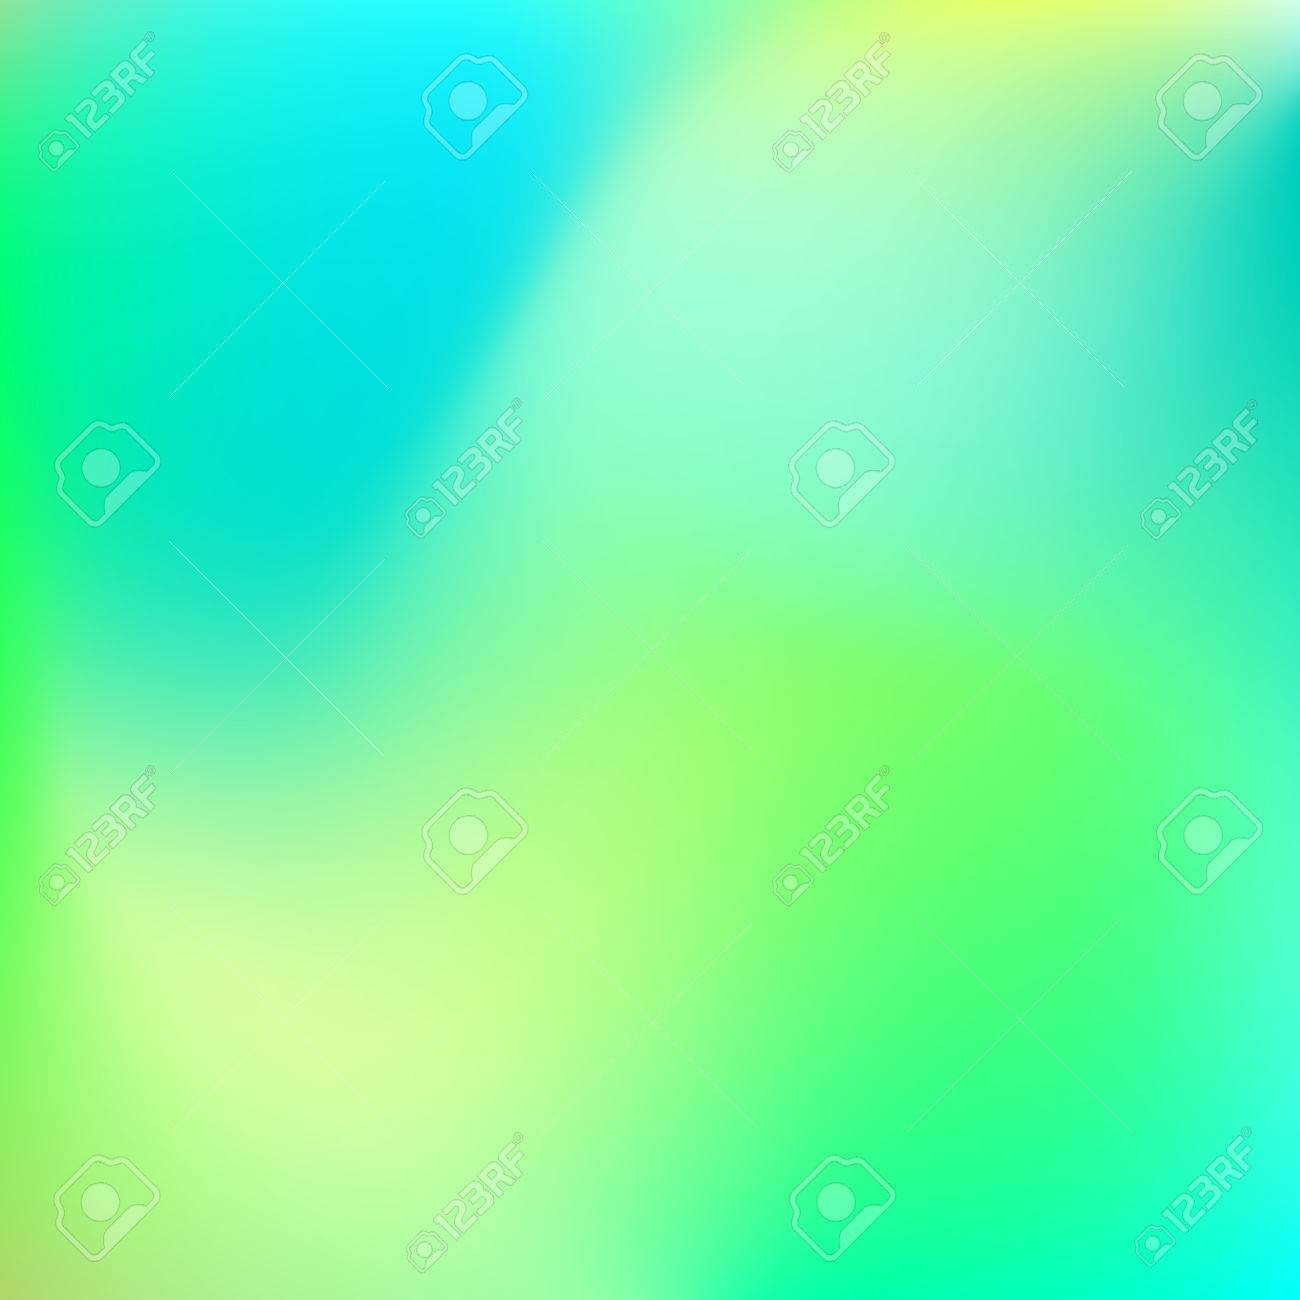 Web colors lime - Abstract Background With Trend Gradient Pastel Blur Colors Lime Yellow Green Blue